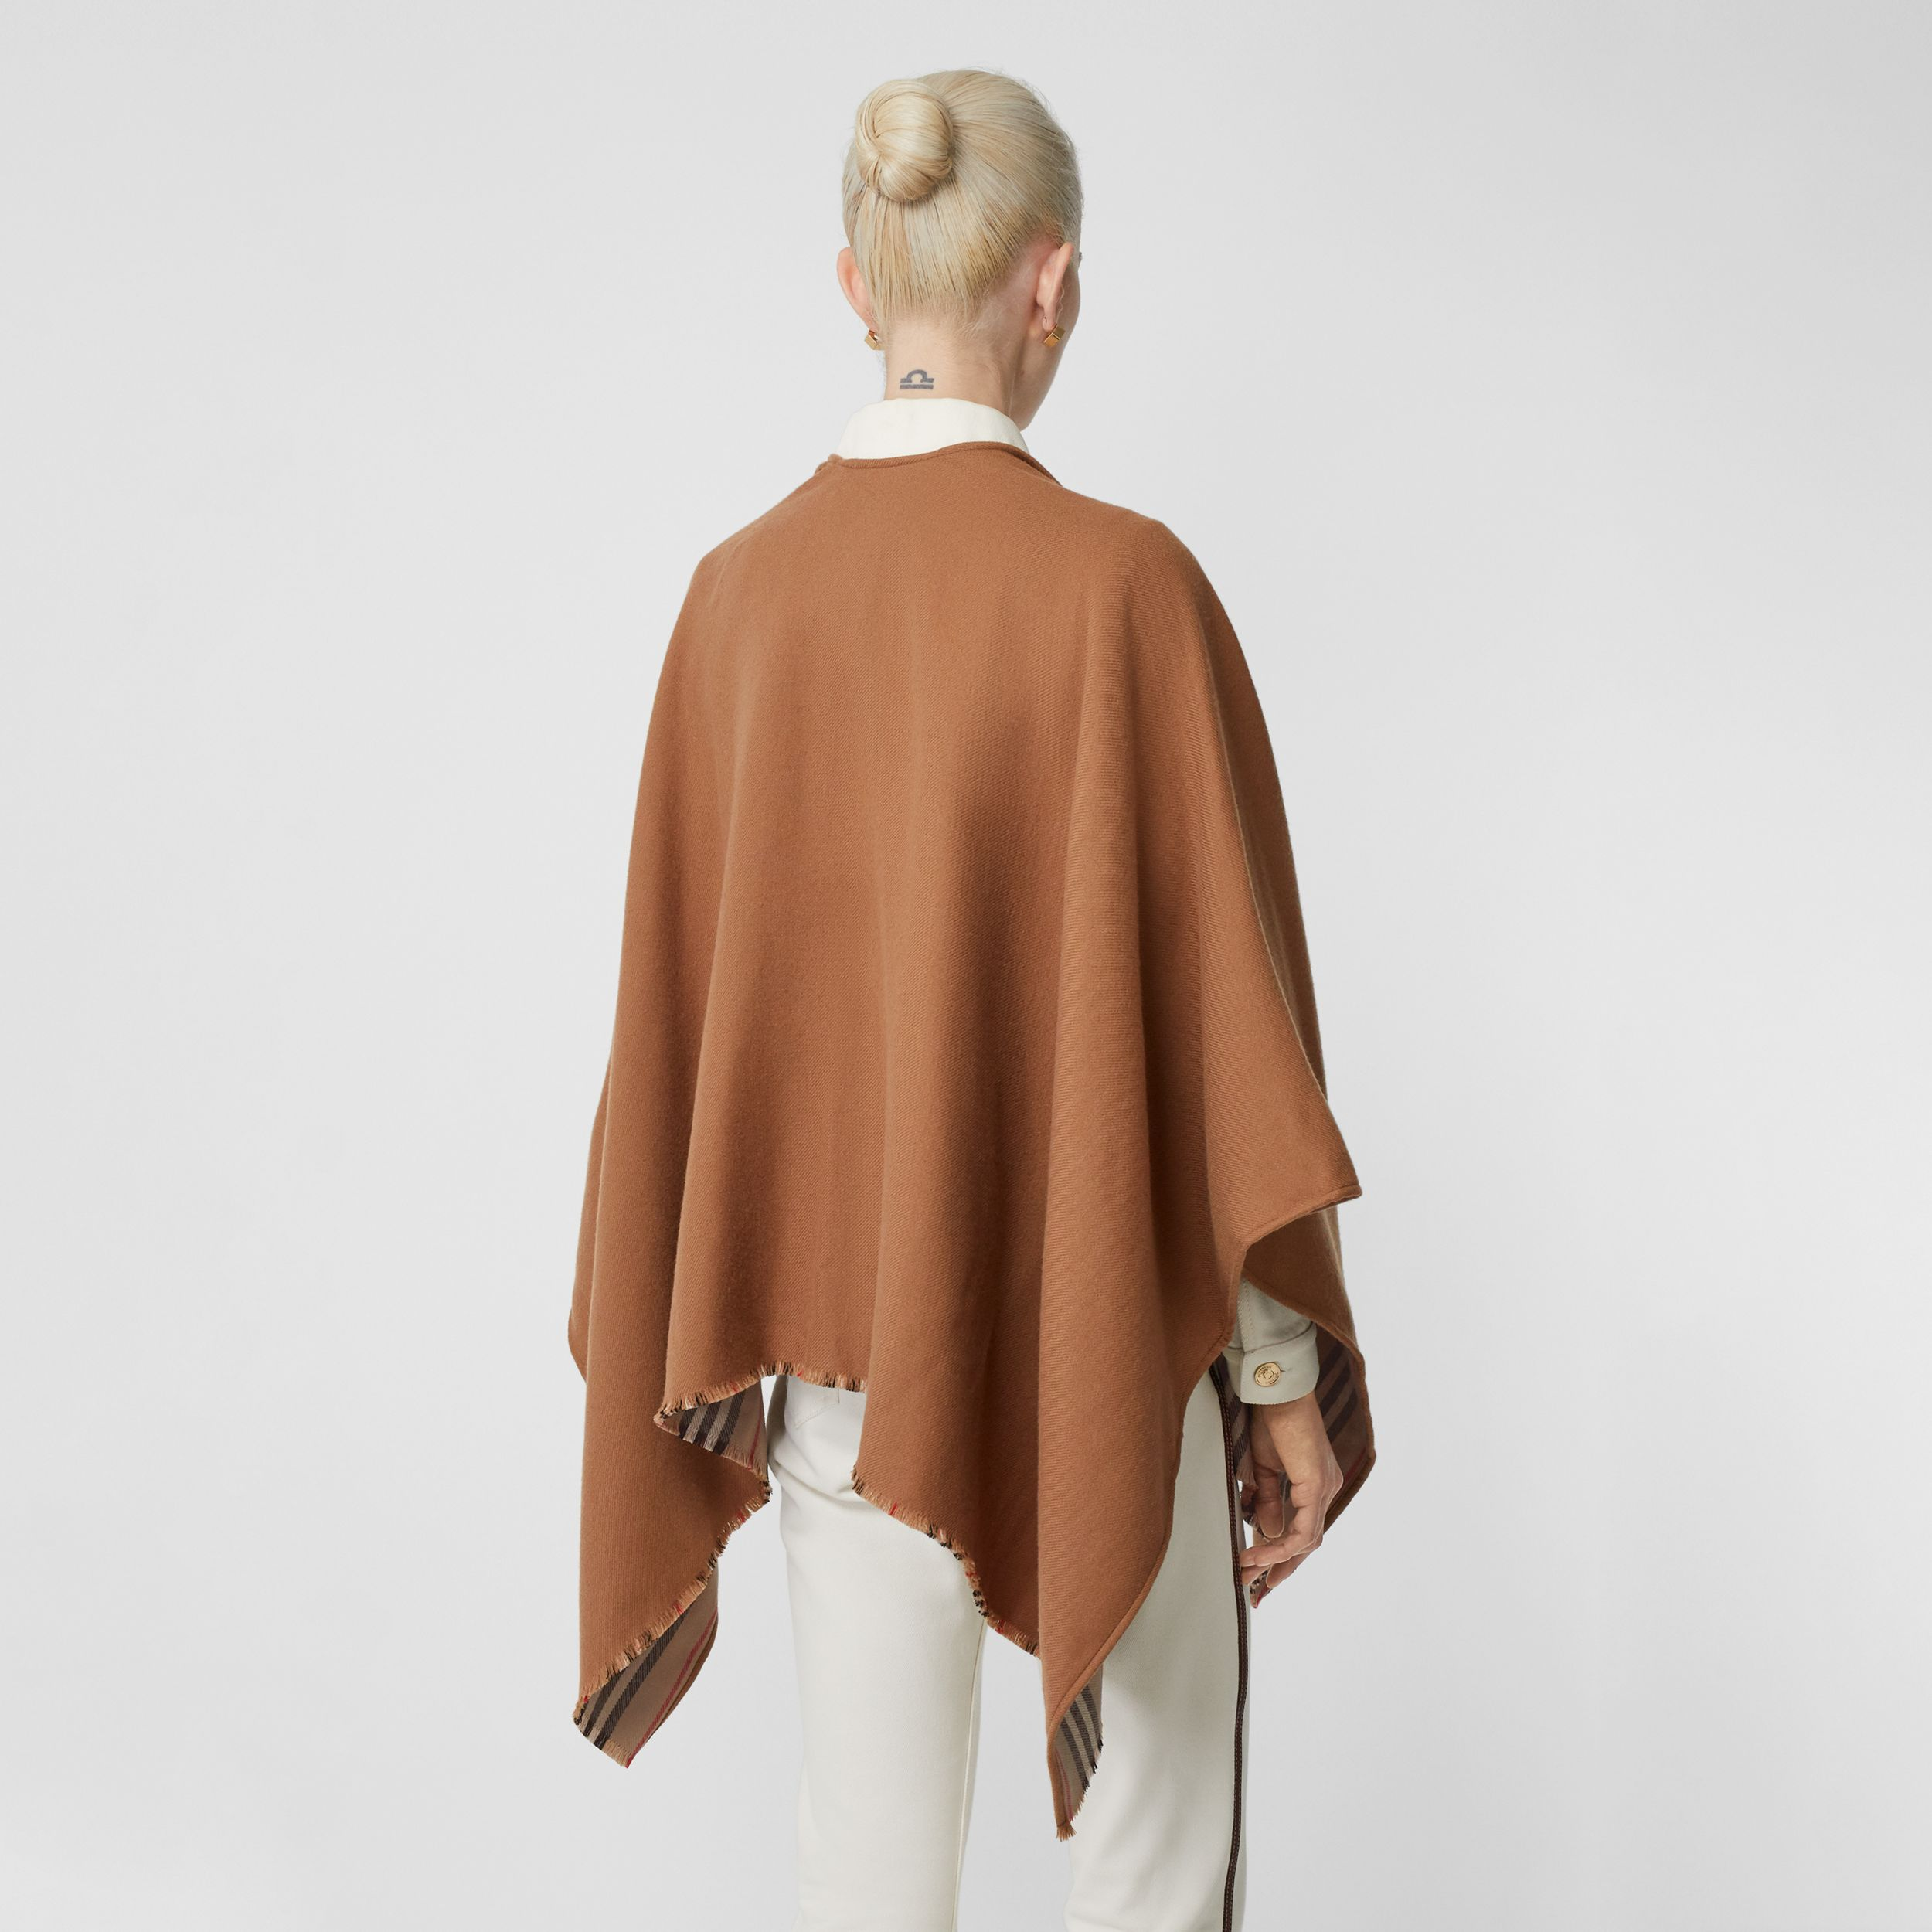 Icon Stripe Detail Wool Cape in Flaxseed - Women | Burberry - 3